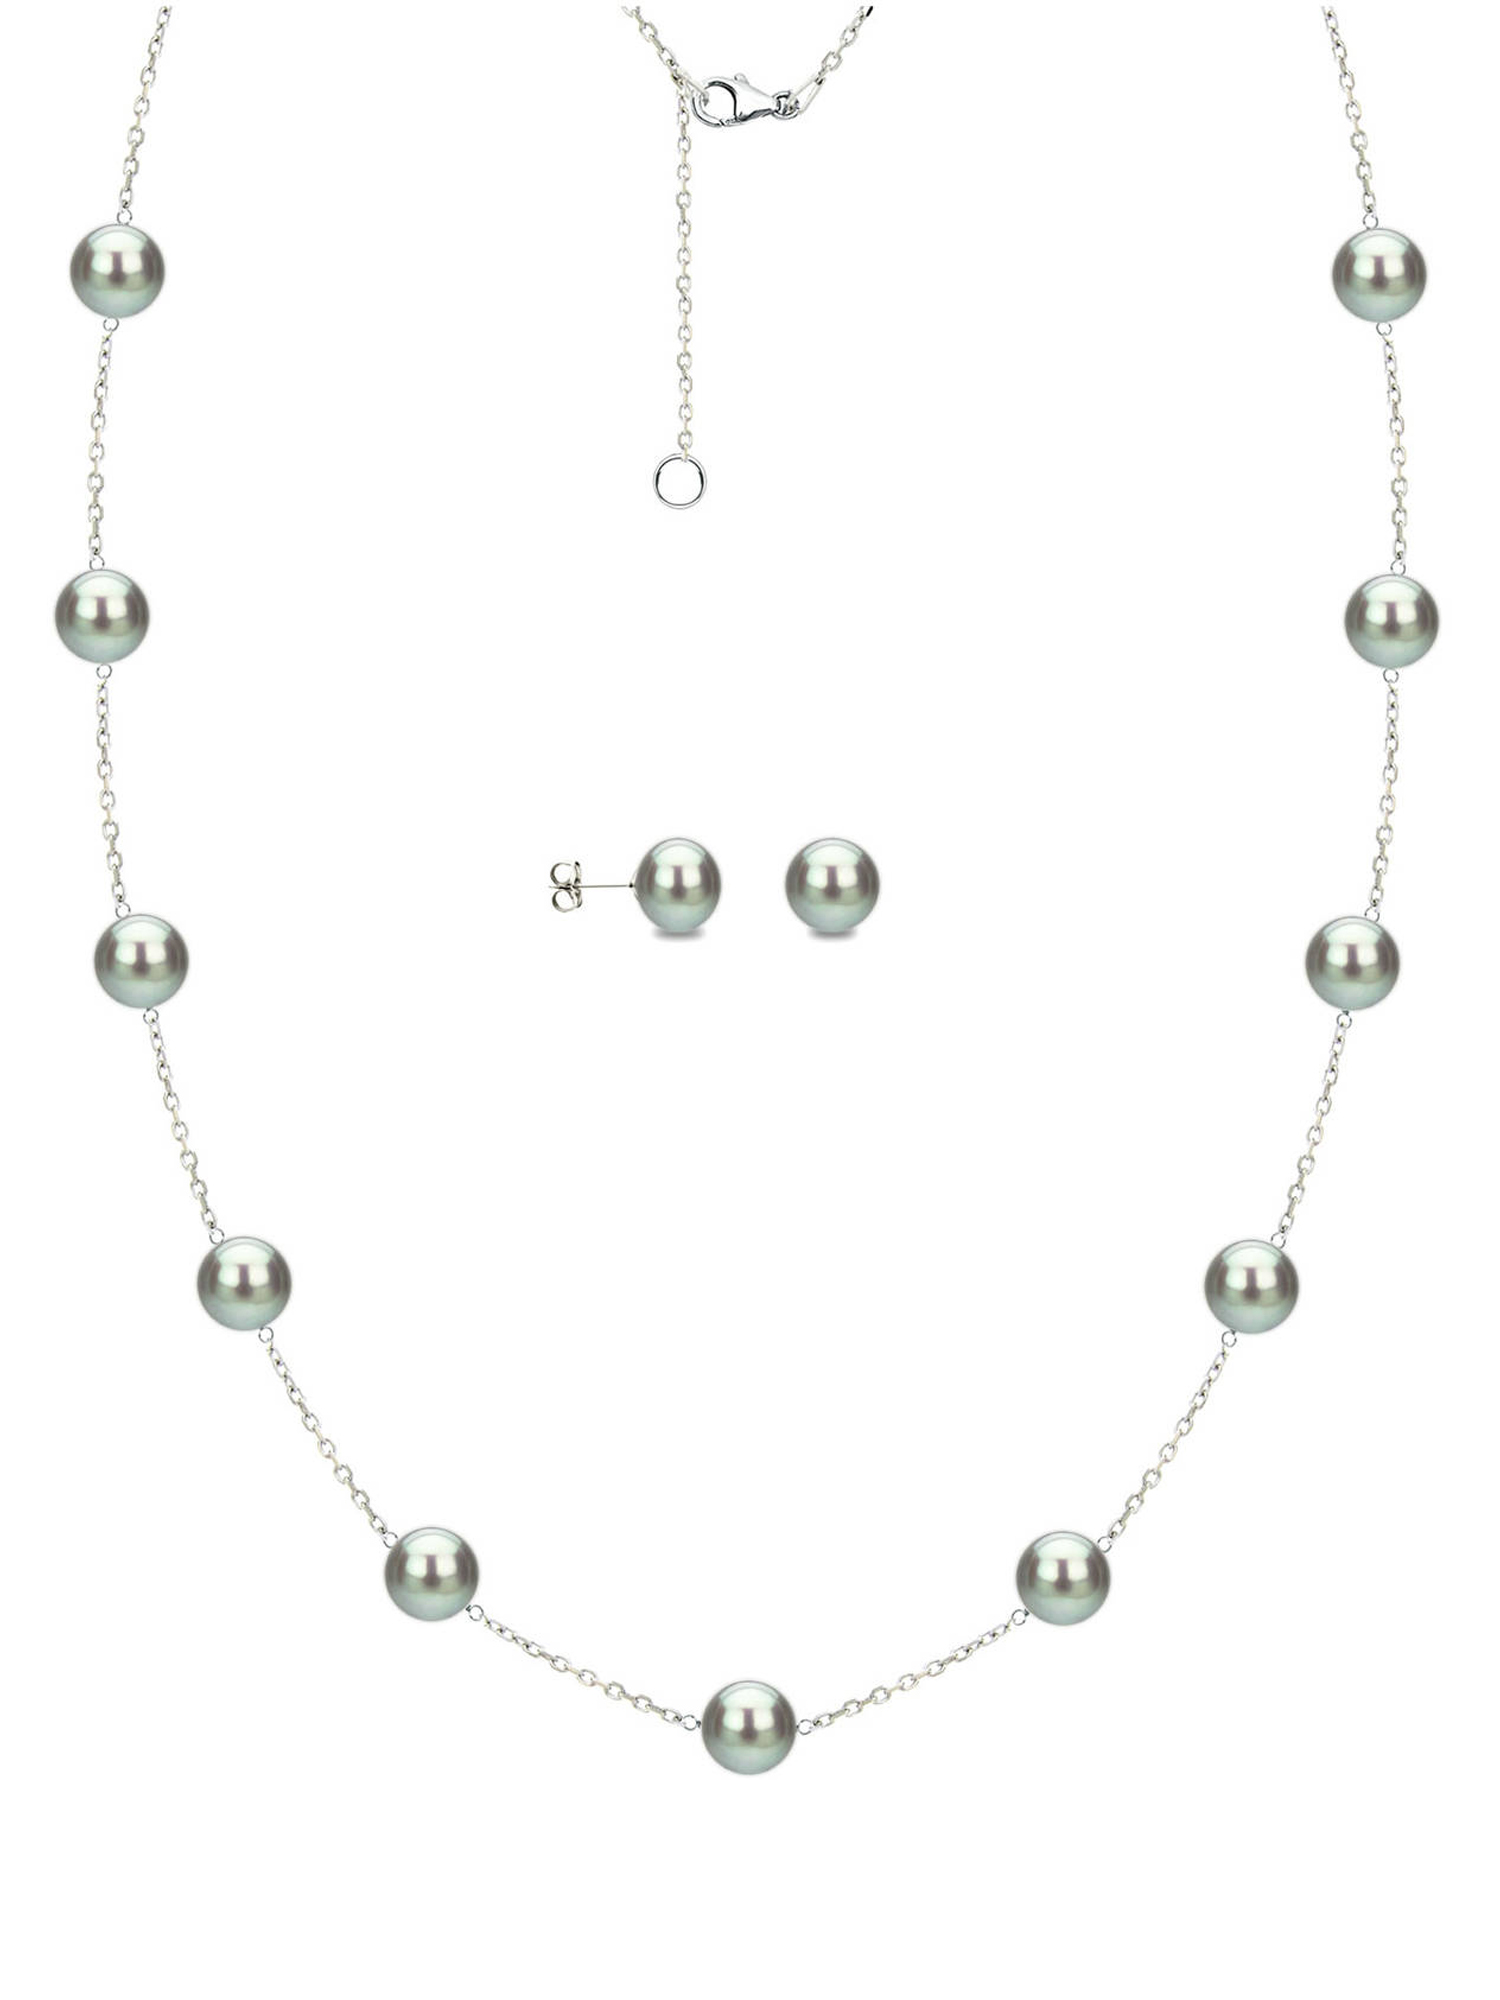 "8mm x 9mm Grey Cultured Freshwater Pearl Sterling Silver Station Necklace and Matching Earring Set, 18"" with... by ADDURN"